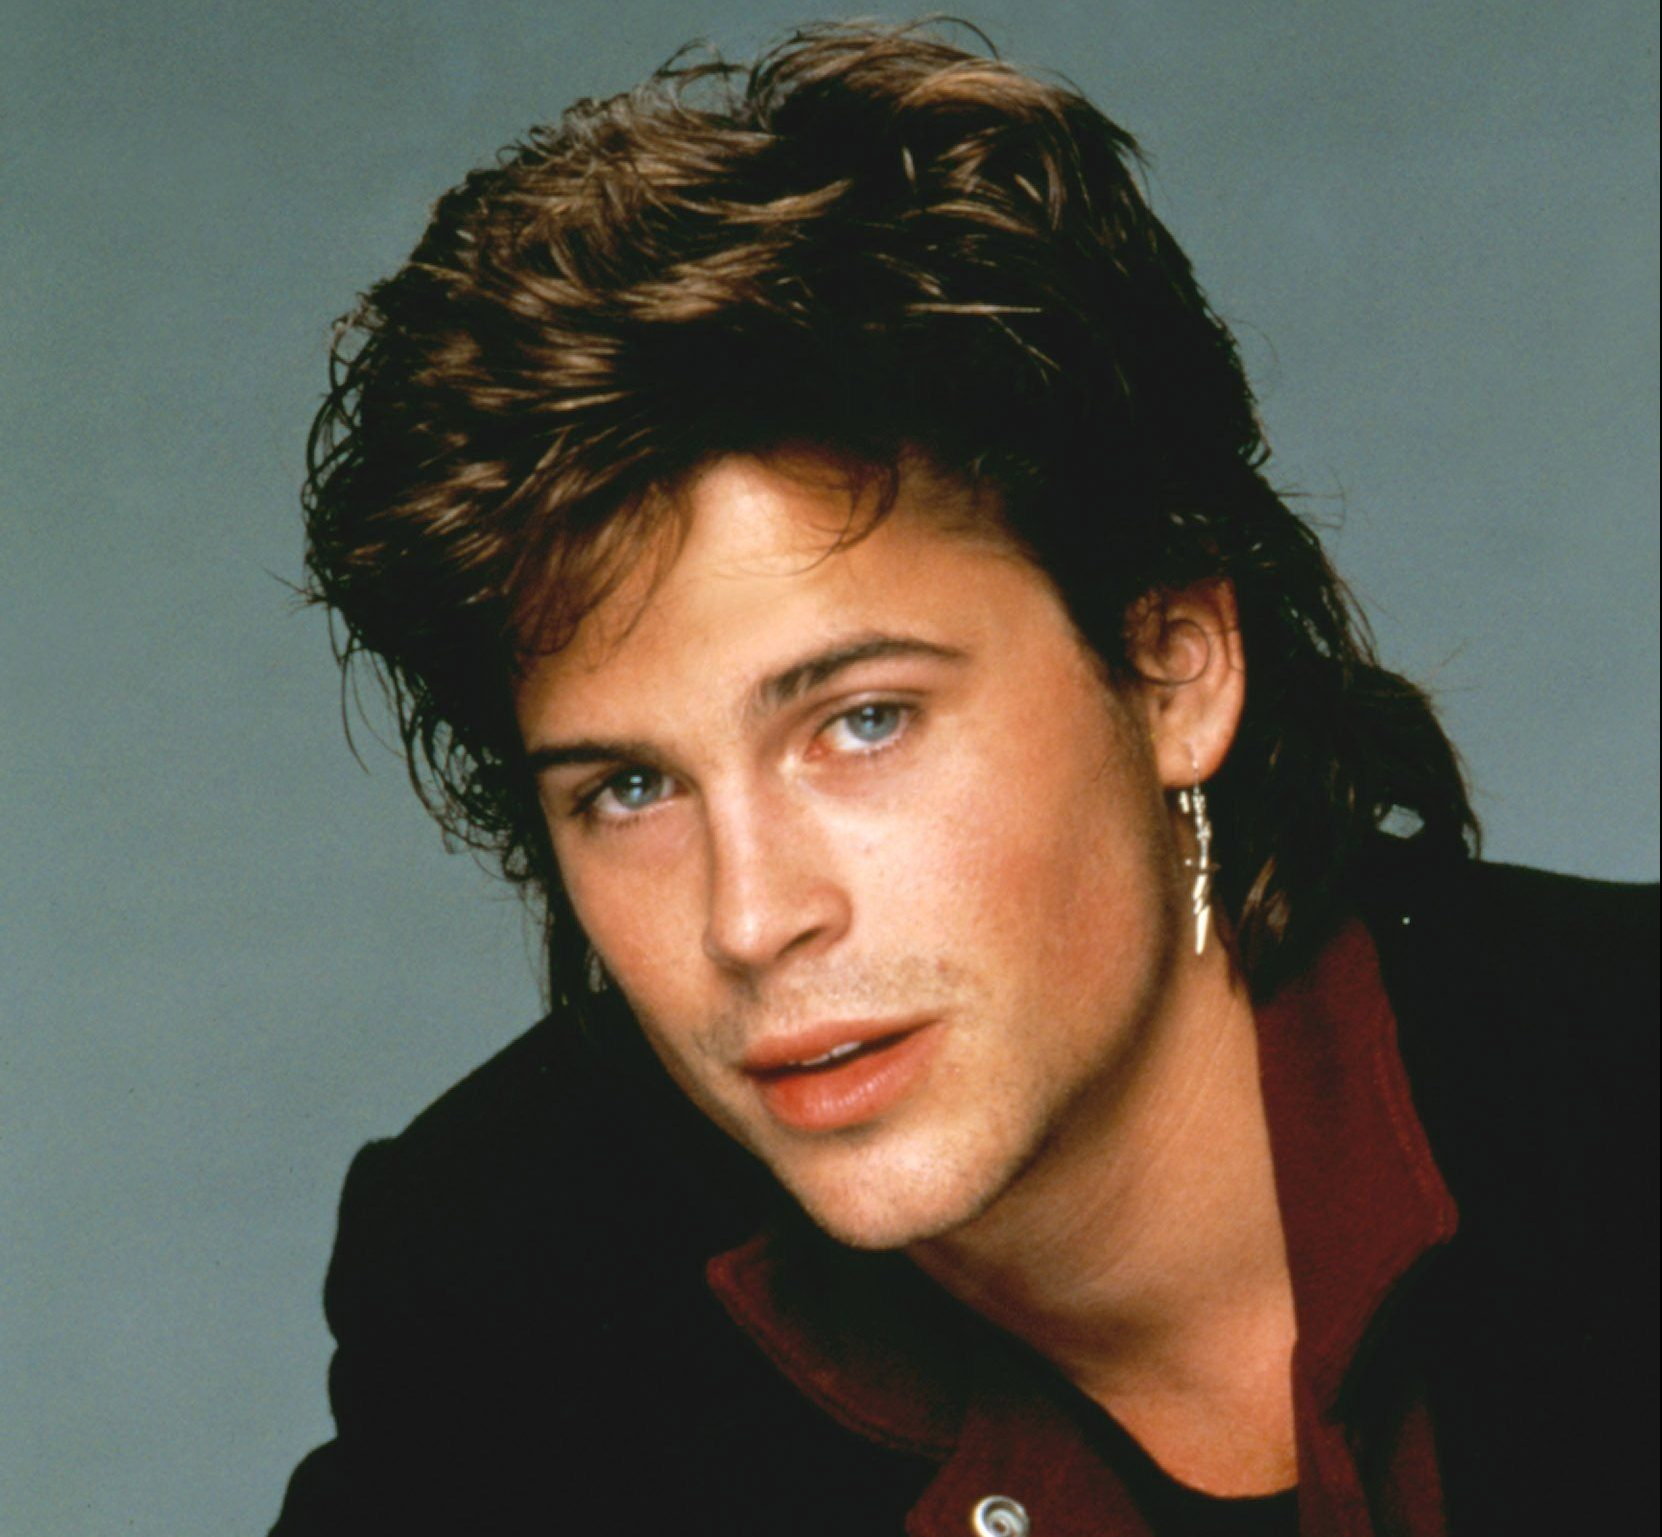 a2bd99f091217259f67bae8b95b441b7 e1604570287477 10 Movie Stars Who Could Only Have Made It Big In The 80s